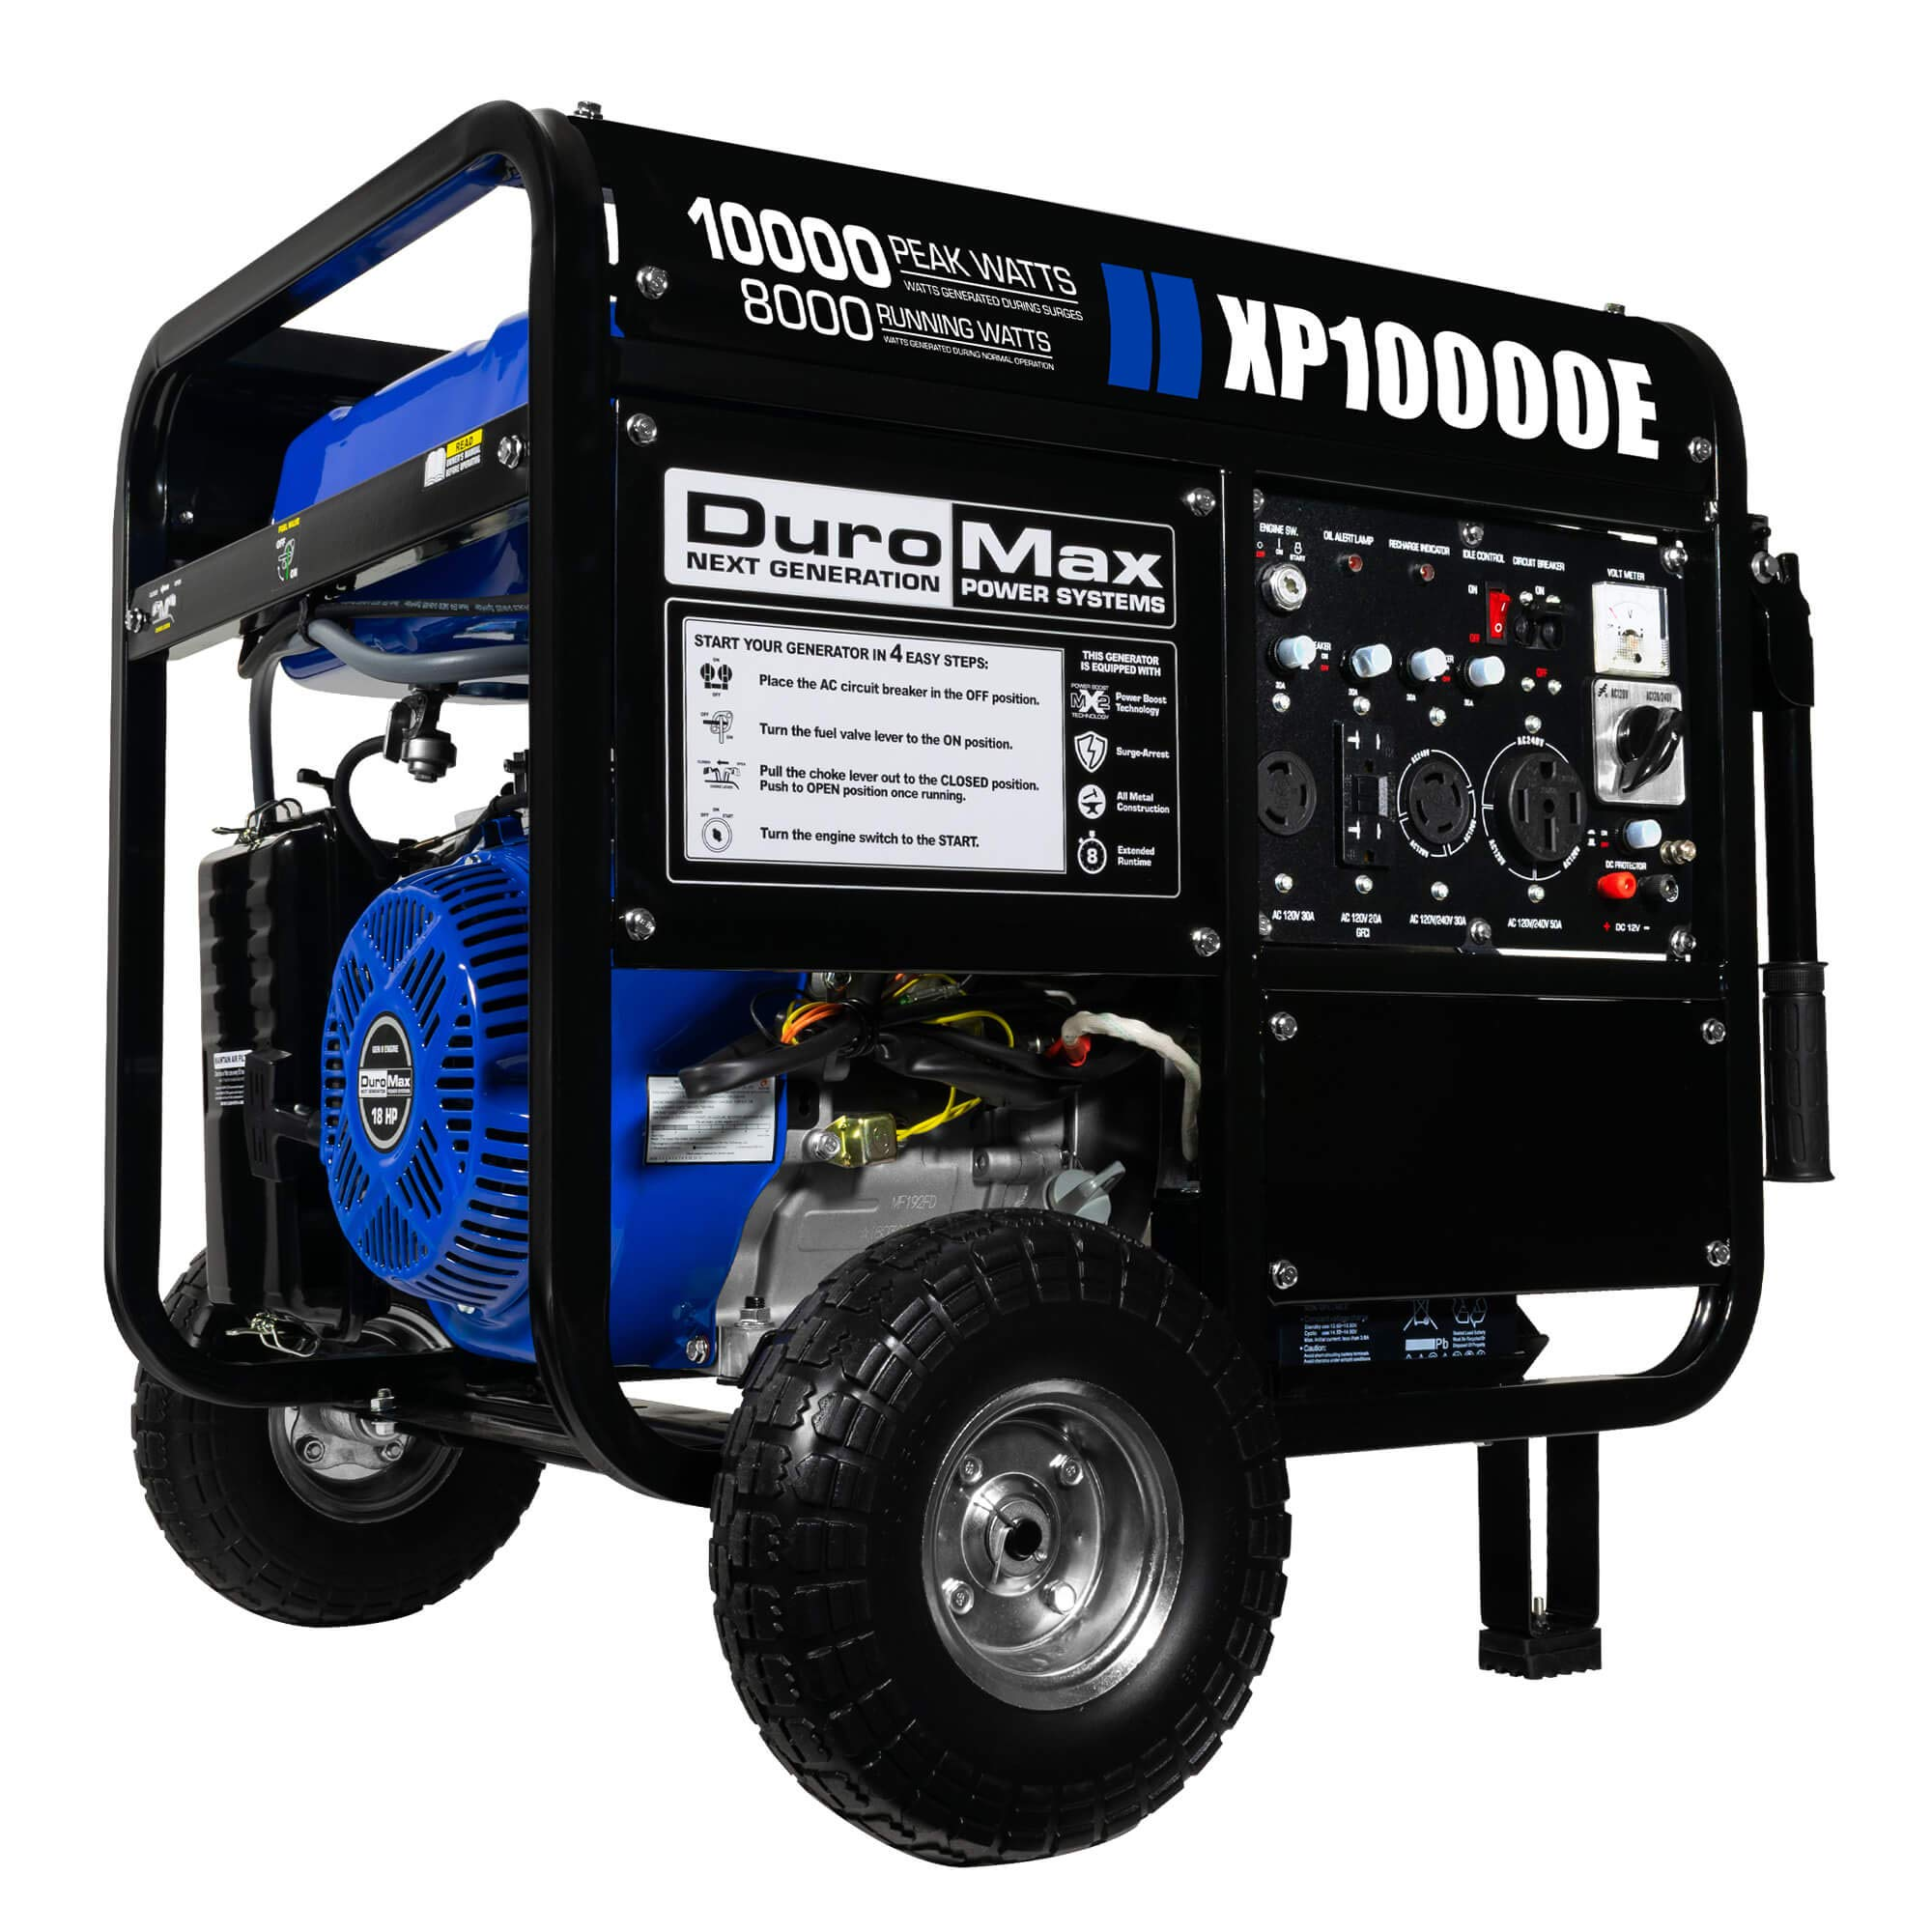 DuroMax XP10000E, 8000 Running Watts/10000 Starting Watts, Gas Powered Portable Generator – Refurbished